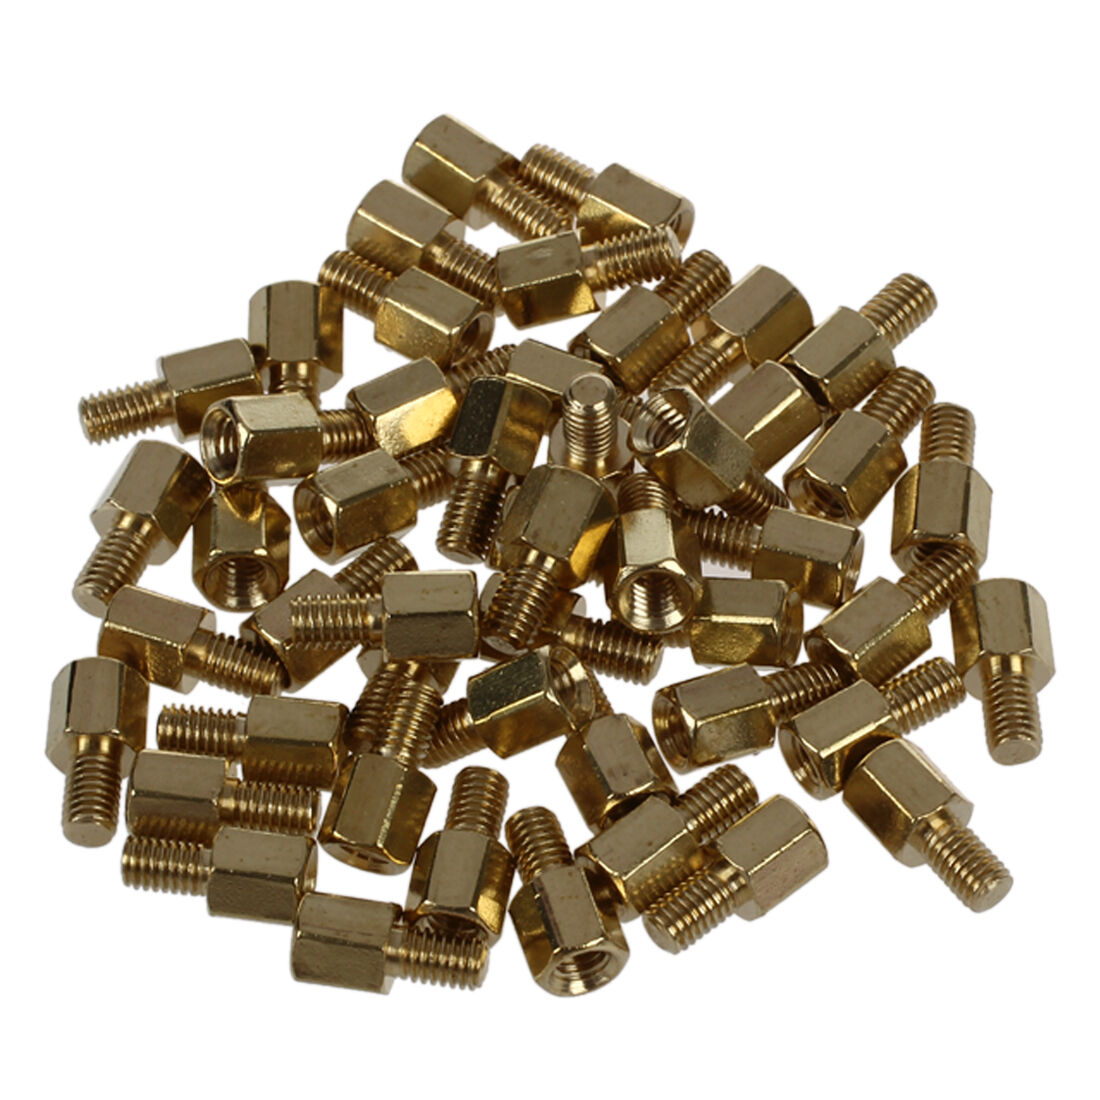 50 Pcs Brass Screw Pcb Standoffs Hexagonal Spacers Male X Female 5mm 120pcs M3 Copper Silver Pillars Standoff Circuit Board Nut 1 Of 4free Shipping